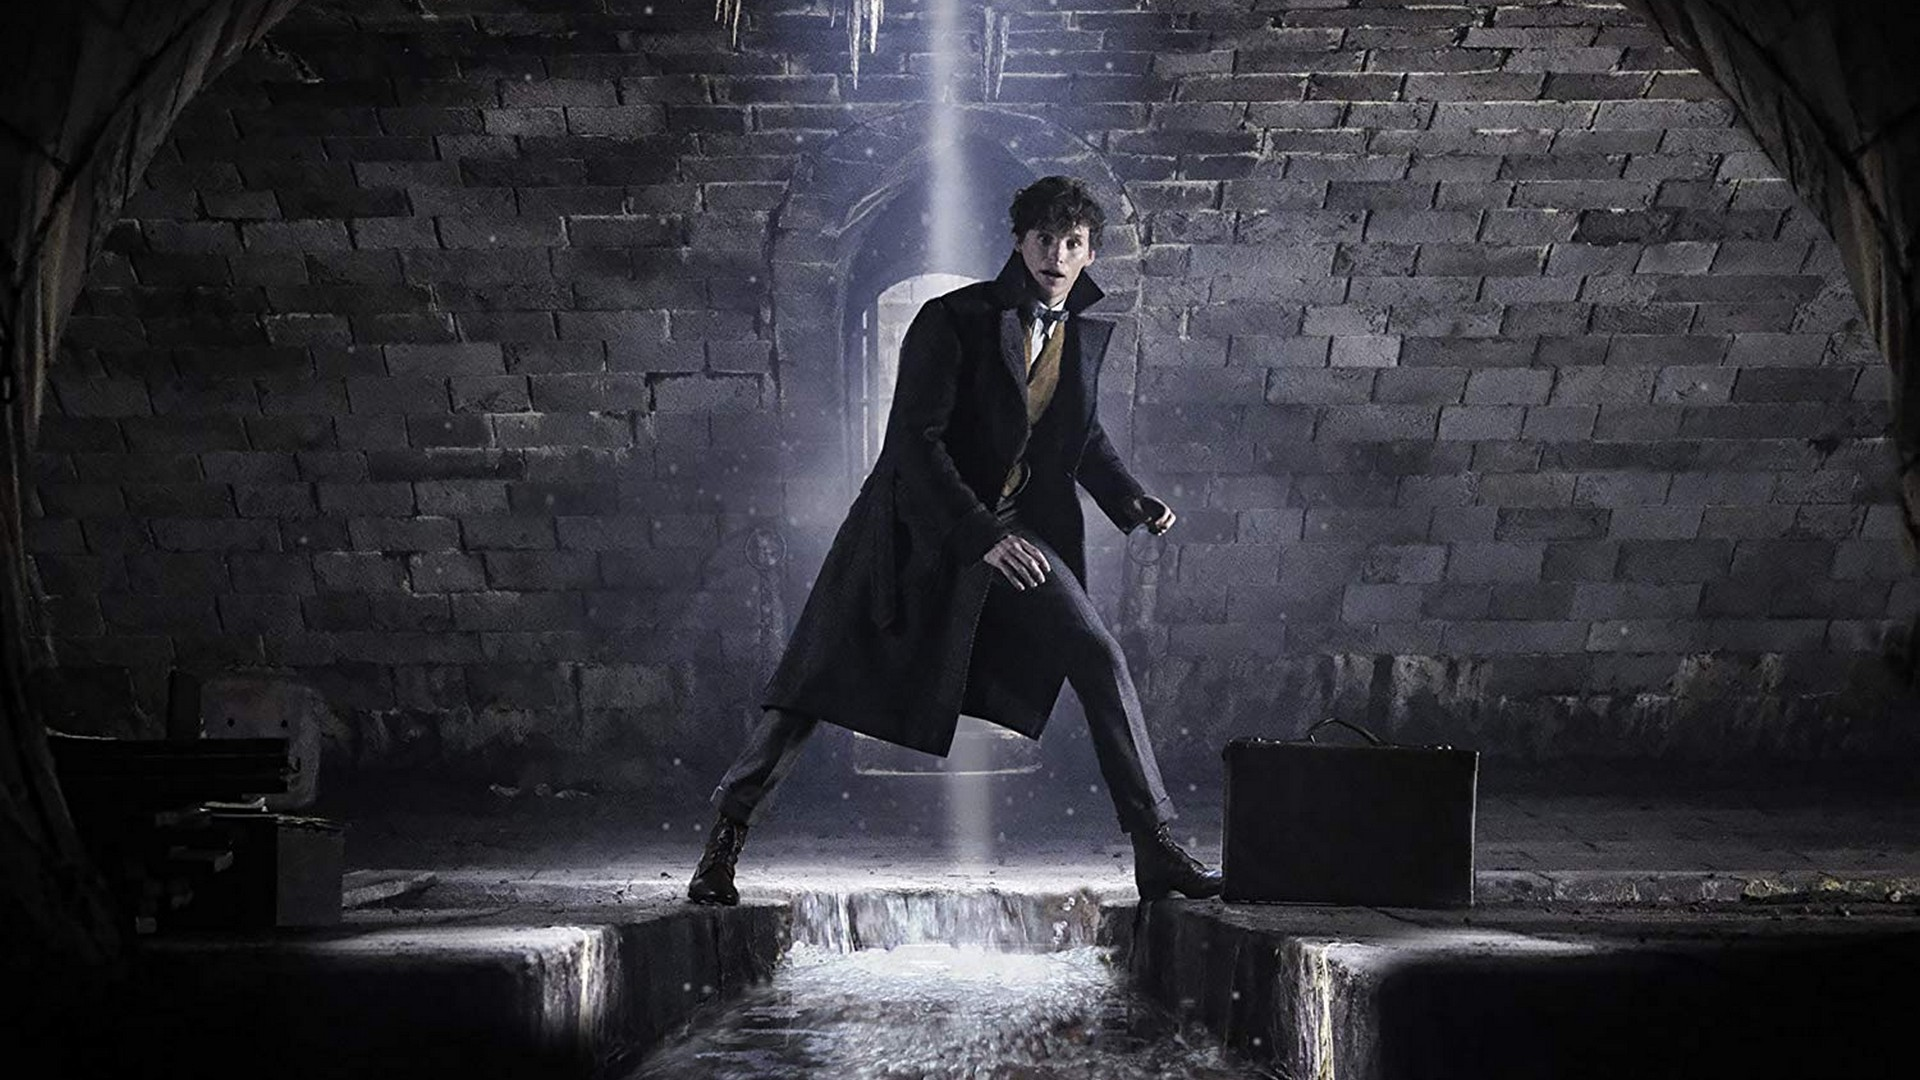 Fantastic Beasts The Crimes of Grindelwald 2018 Wallpaper HD 1920x1080